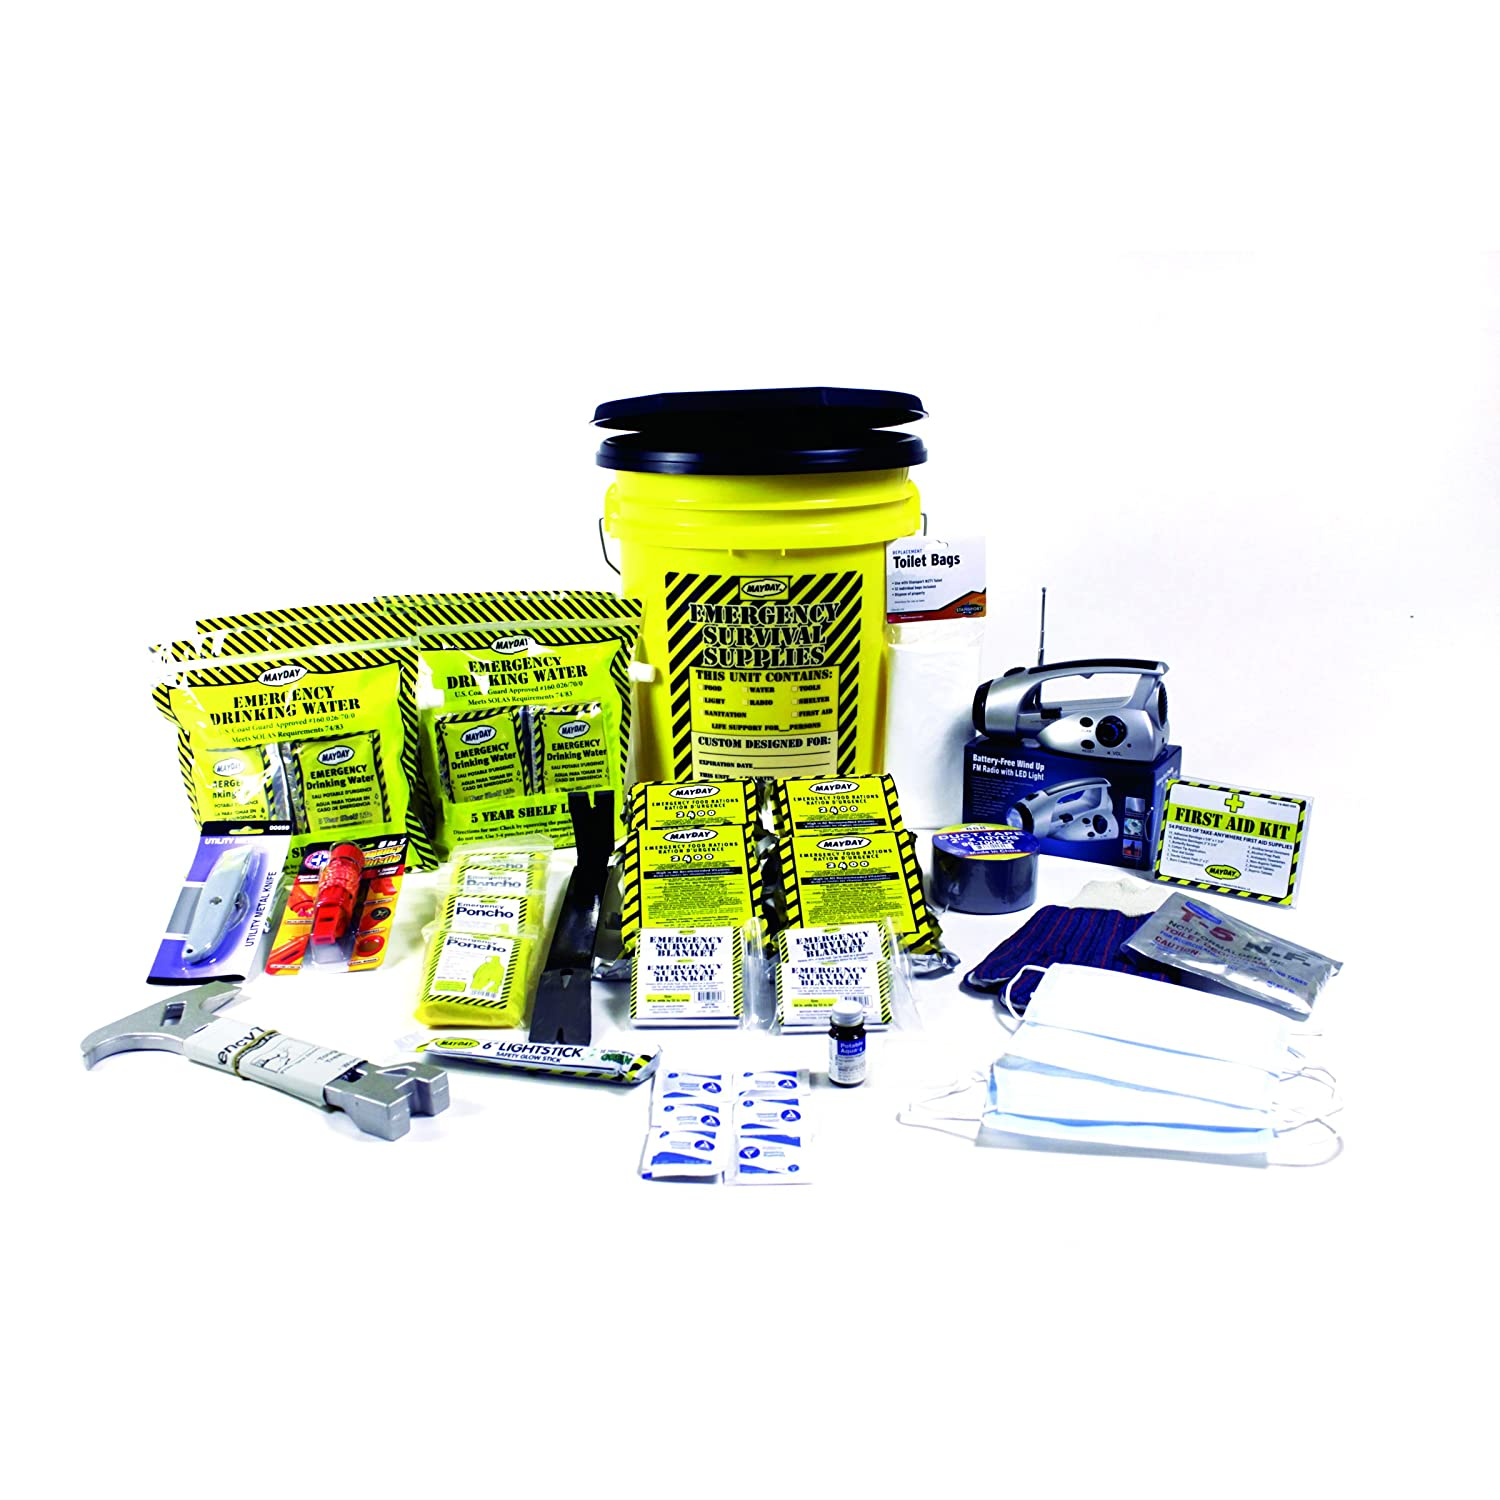 Mayday Earthquake Kit Deluxe Home Honey Bucket Survival Emergency